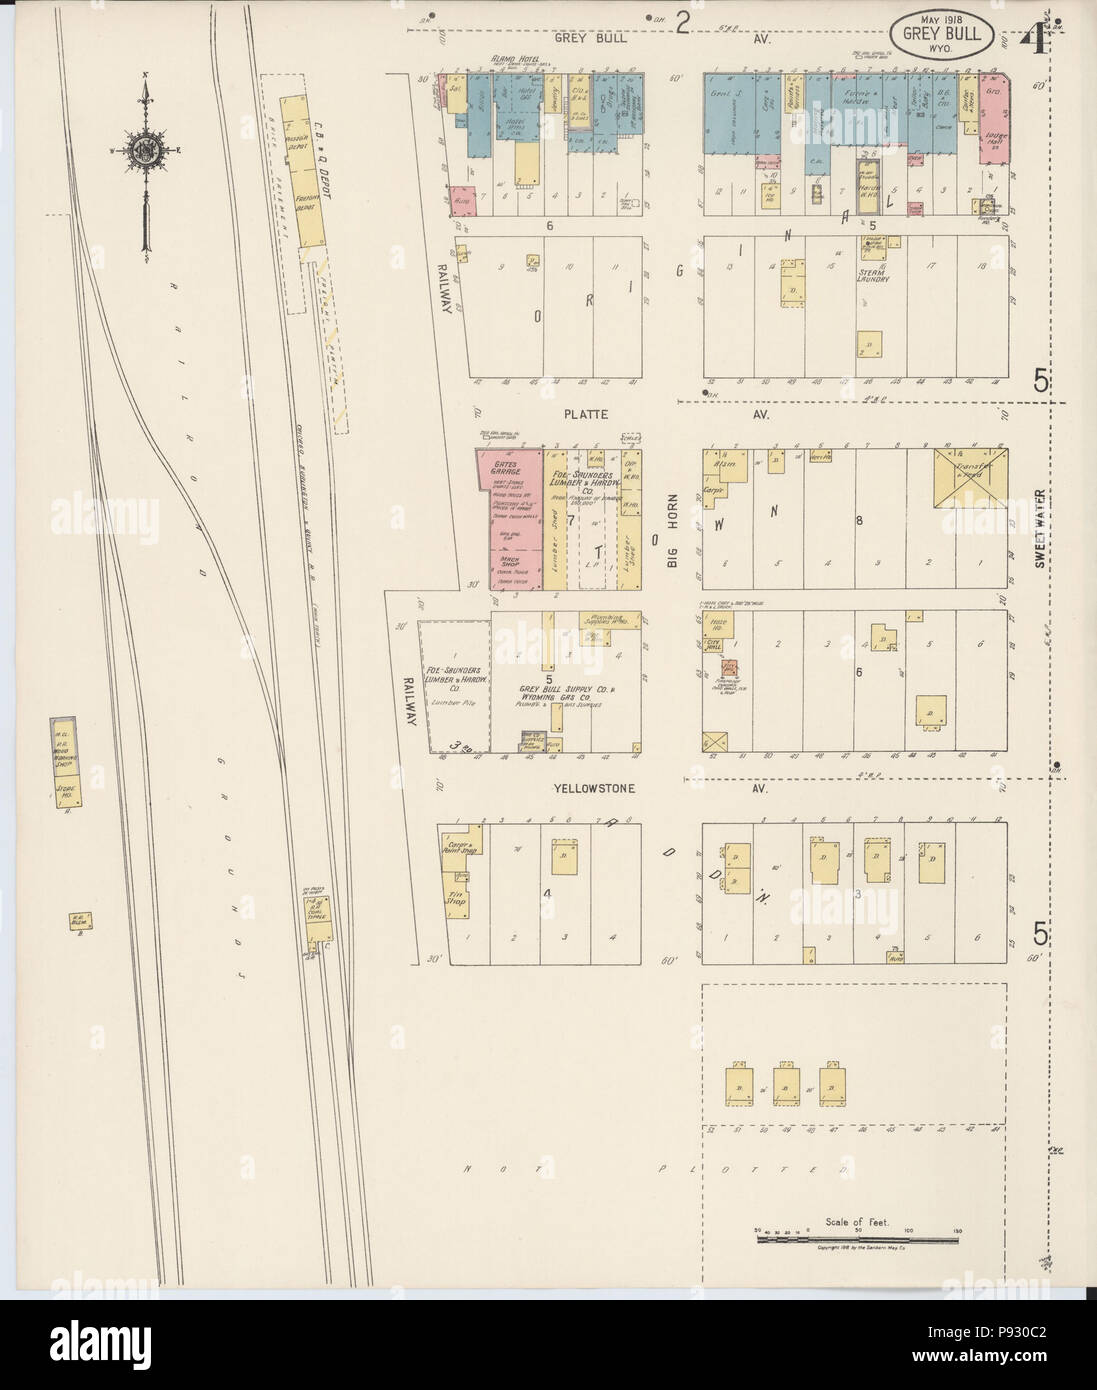 499 Sanborn Fire Insurance Map From Greybull Big Horn County